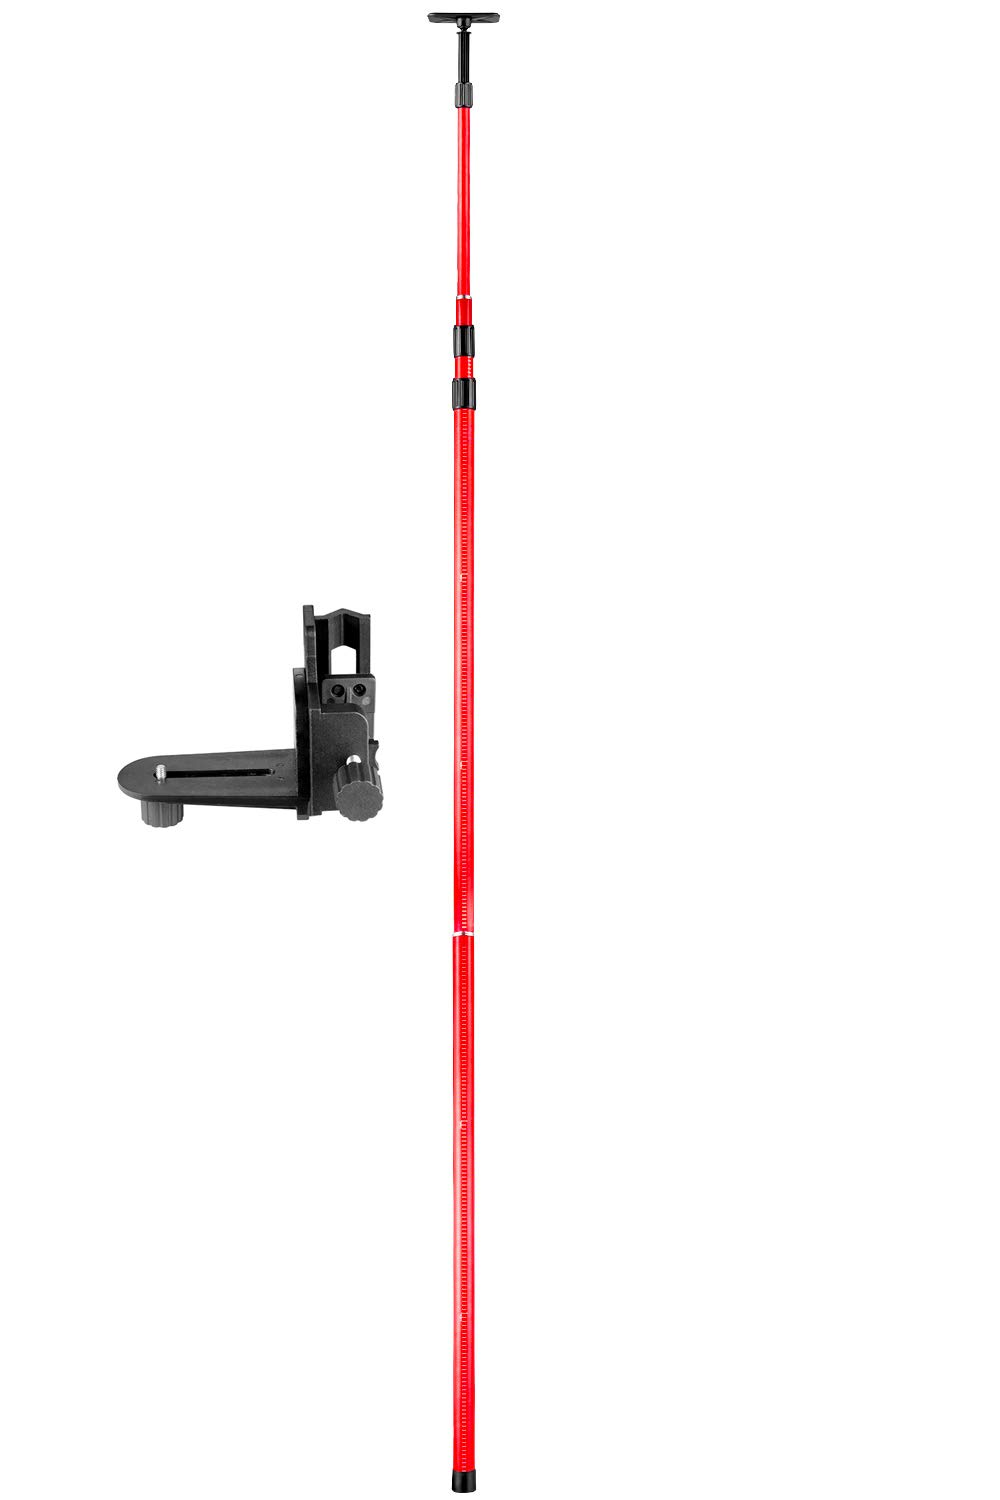 Firecore FS124 Telescoping Pole with 1/4-Inch by 20-Inch Mount Ceiling Leveling Rod for Rotary and Line Lasers